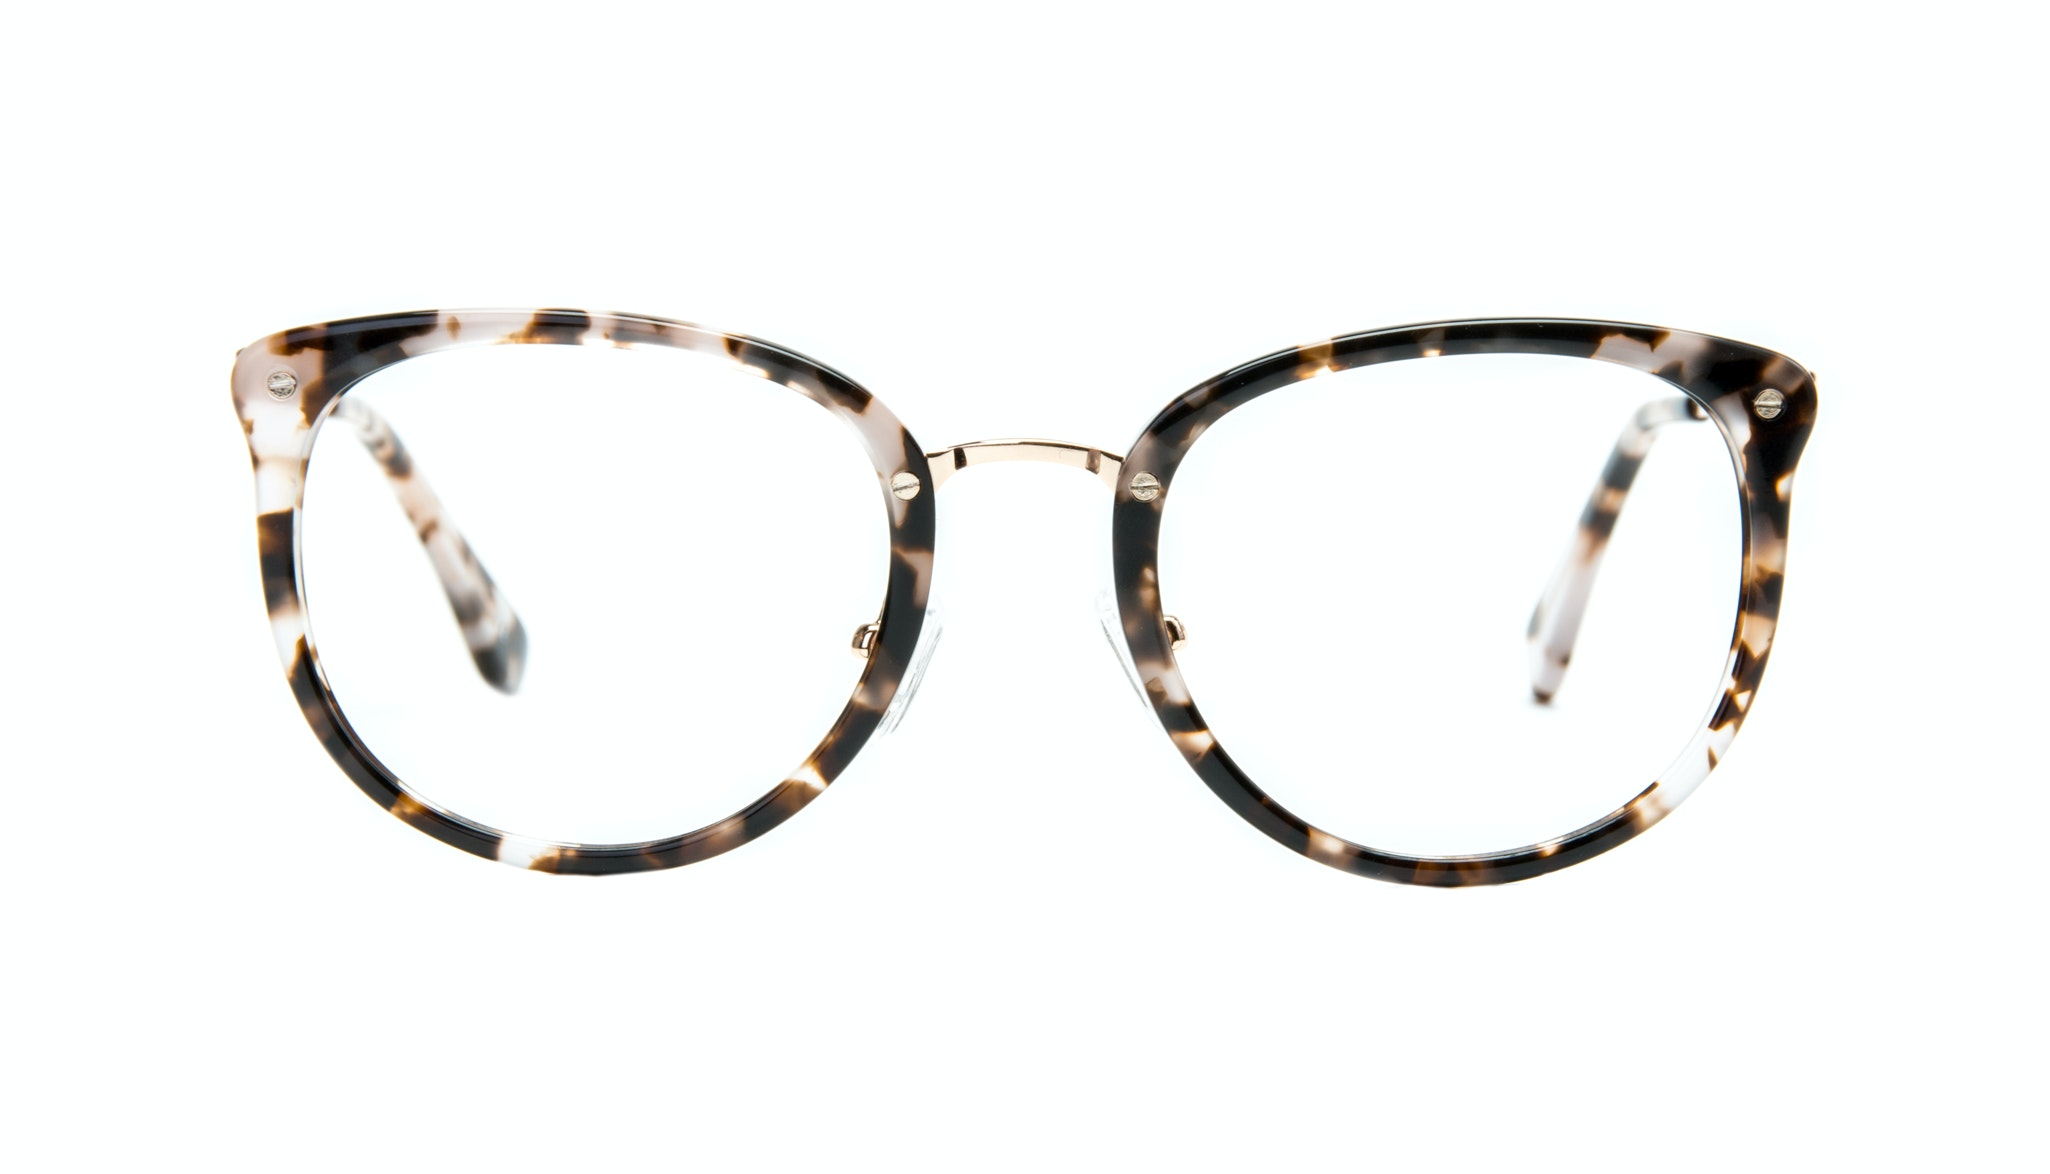 Affordable Fashion Glasses Square Round Eyeglasses Women Amaze Mocha Tortoise